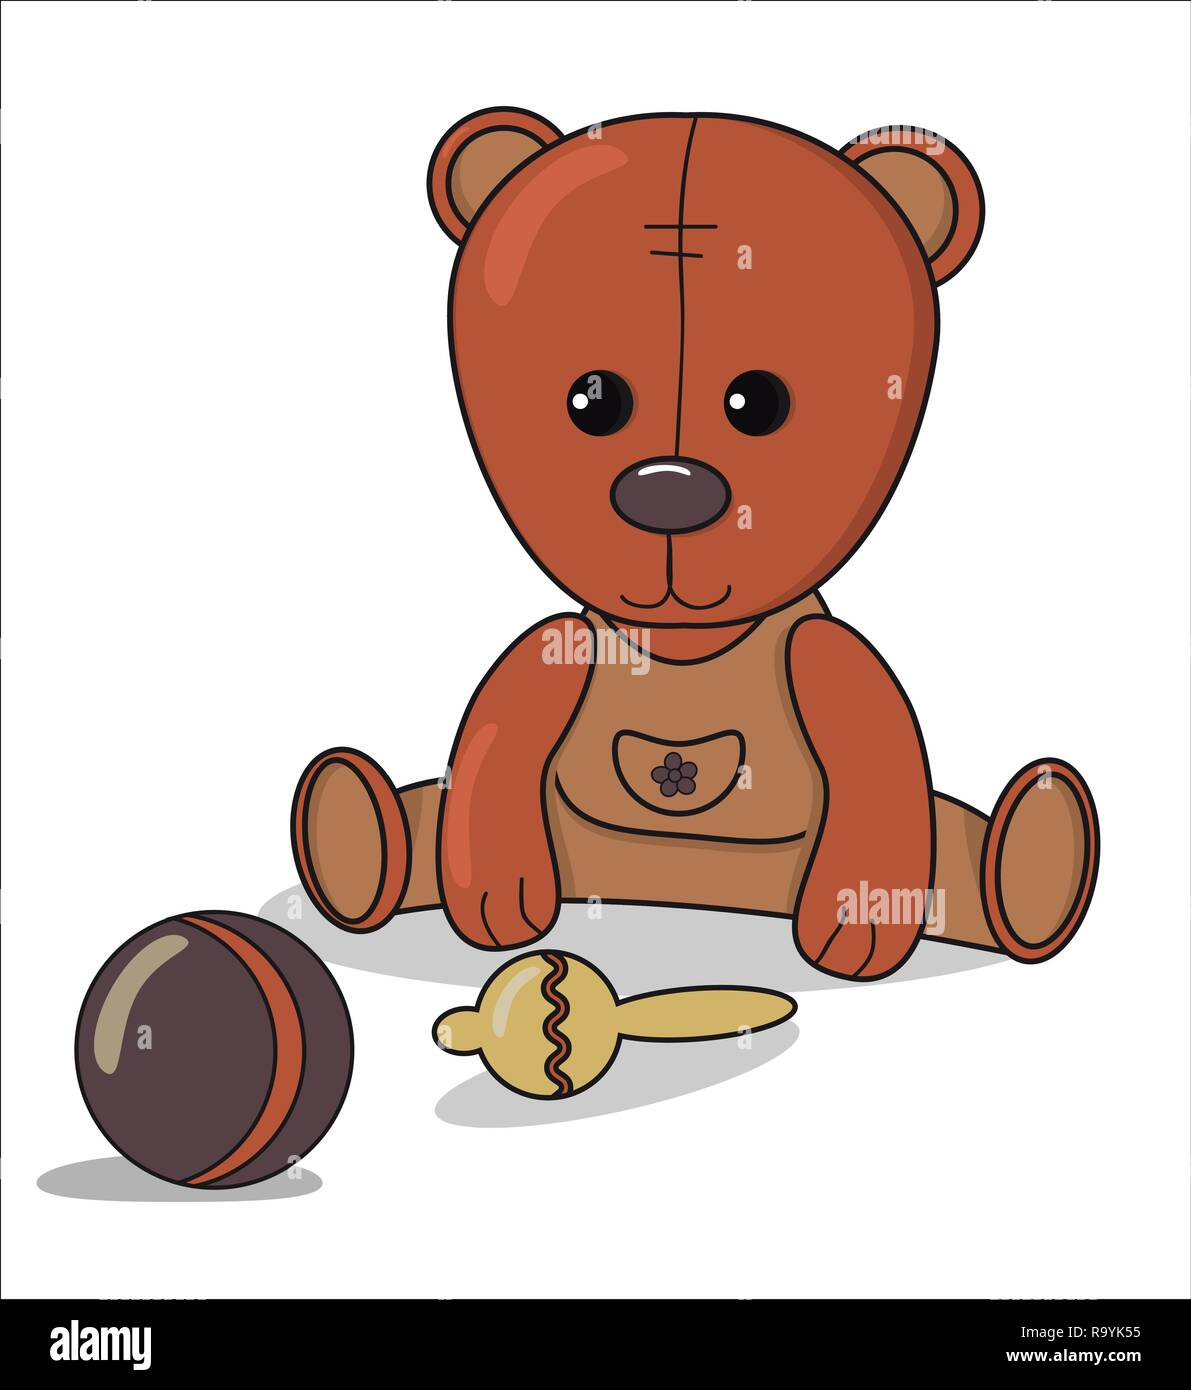 Teddy bear with beanbag , ball, Baby announcement metric card brown and beige color. nursery decor - Stock Vector